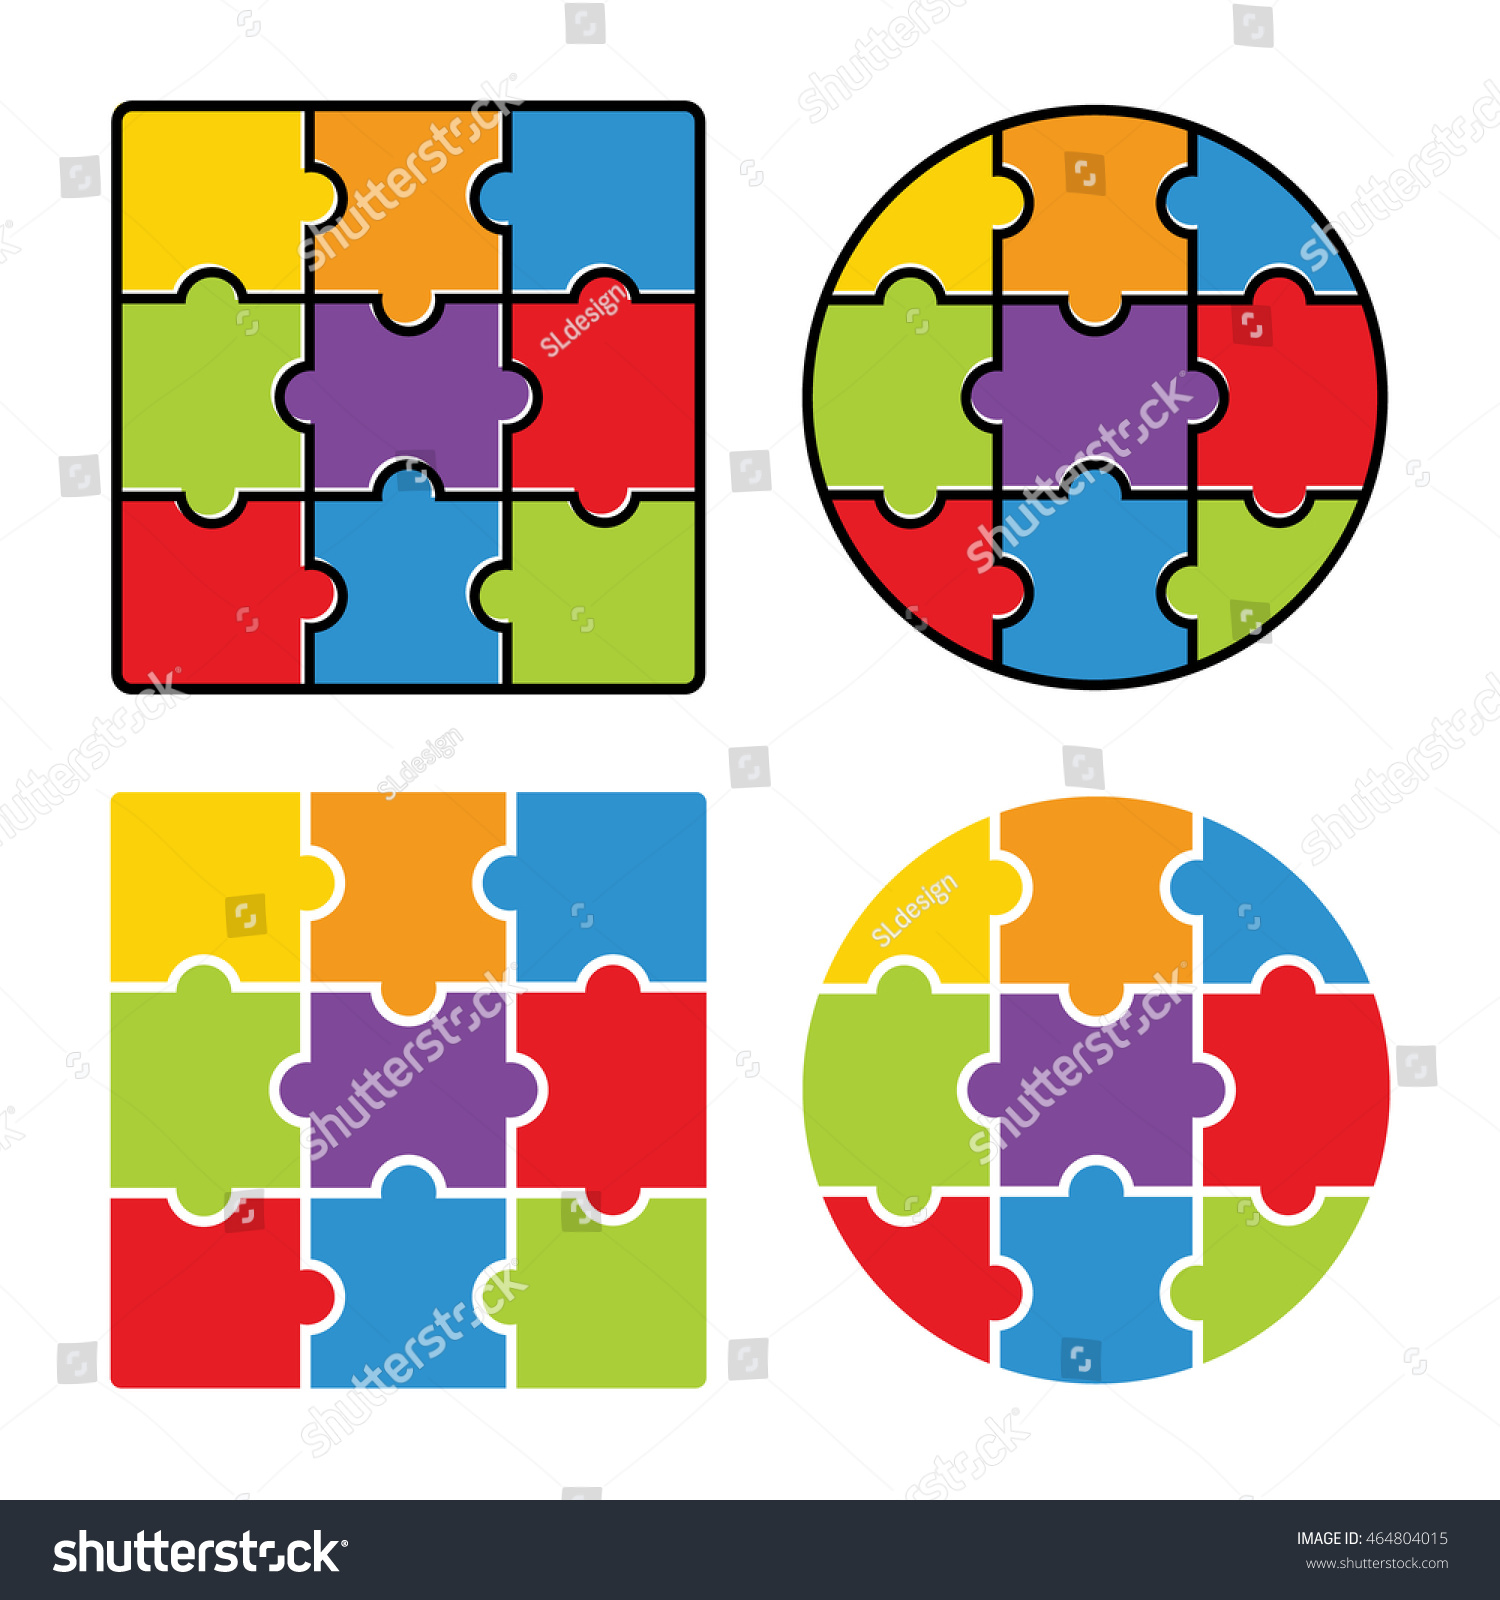 Jigsaw Puzzle Blank Simple Template 3 Image Vectorielle 464804015